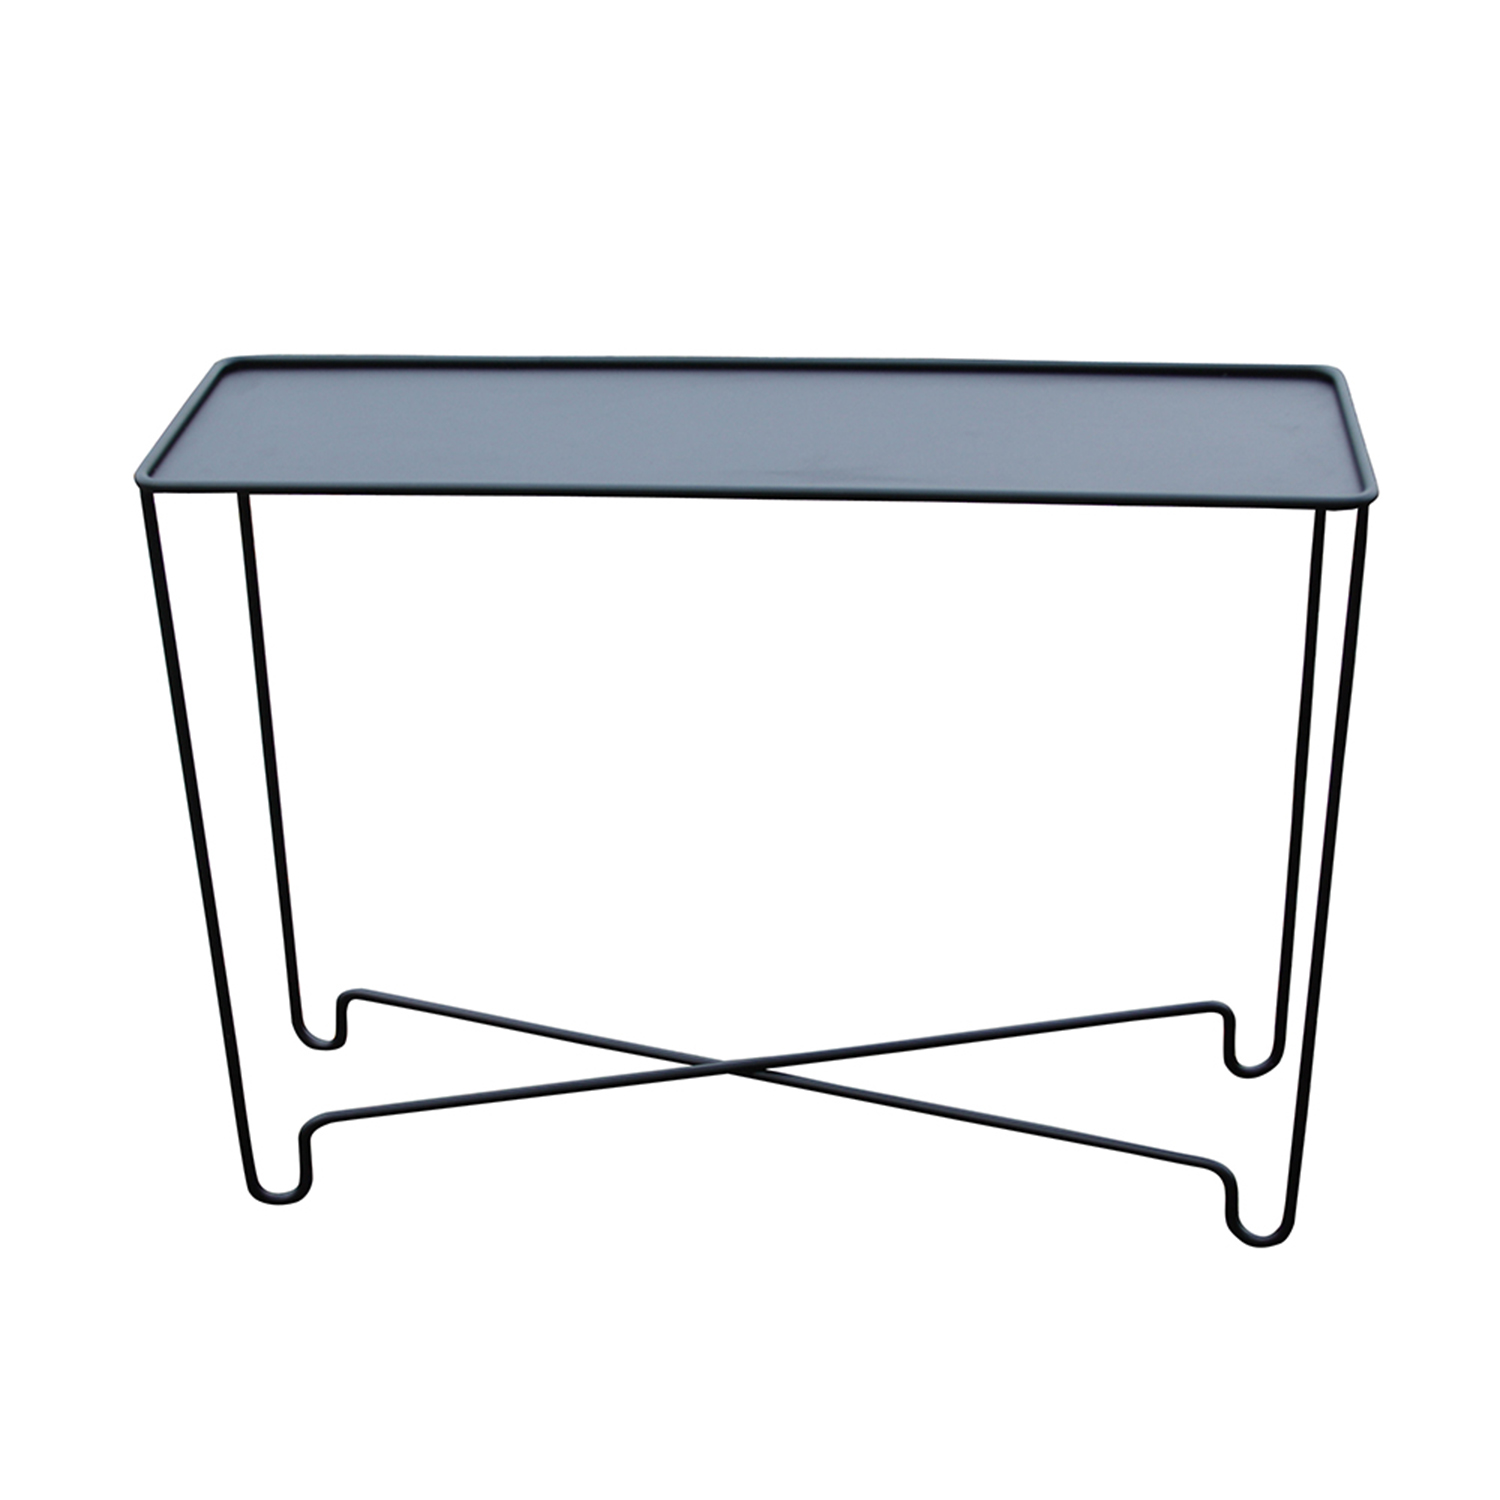 Coco sideboard, panther black